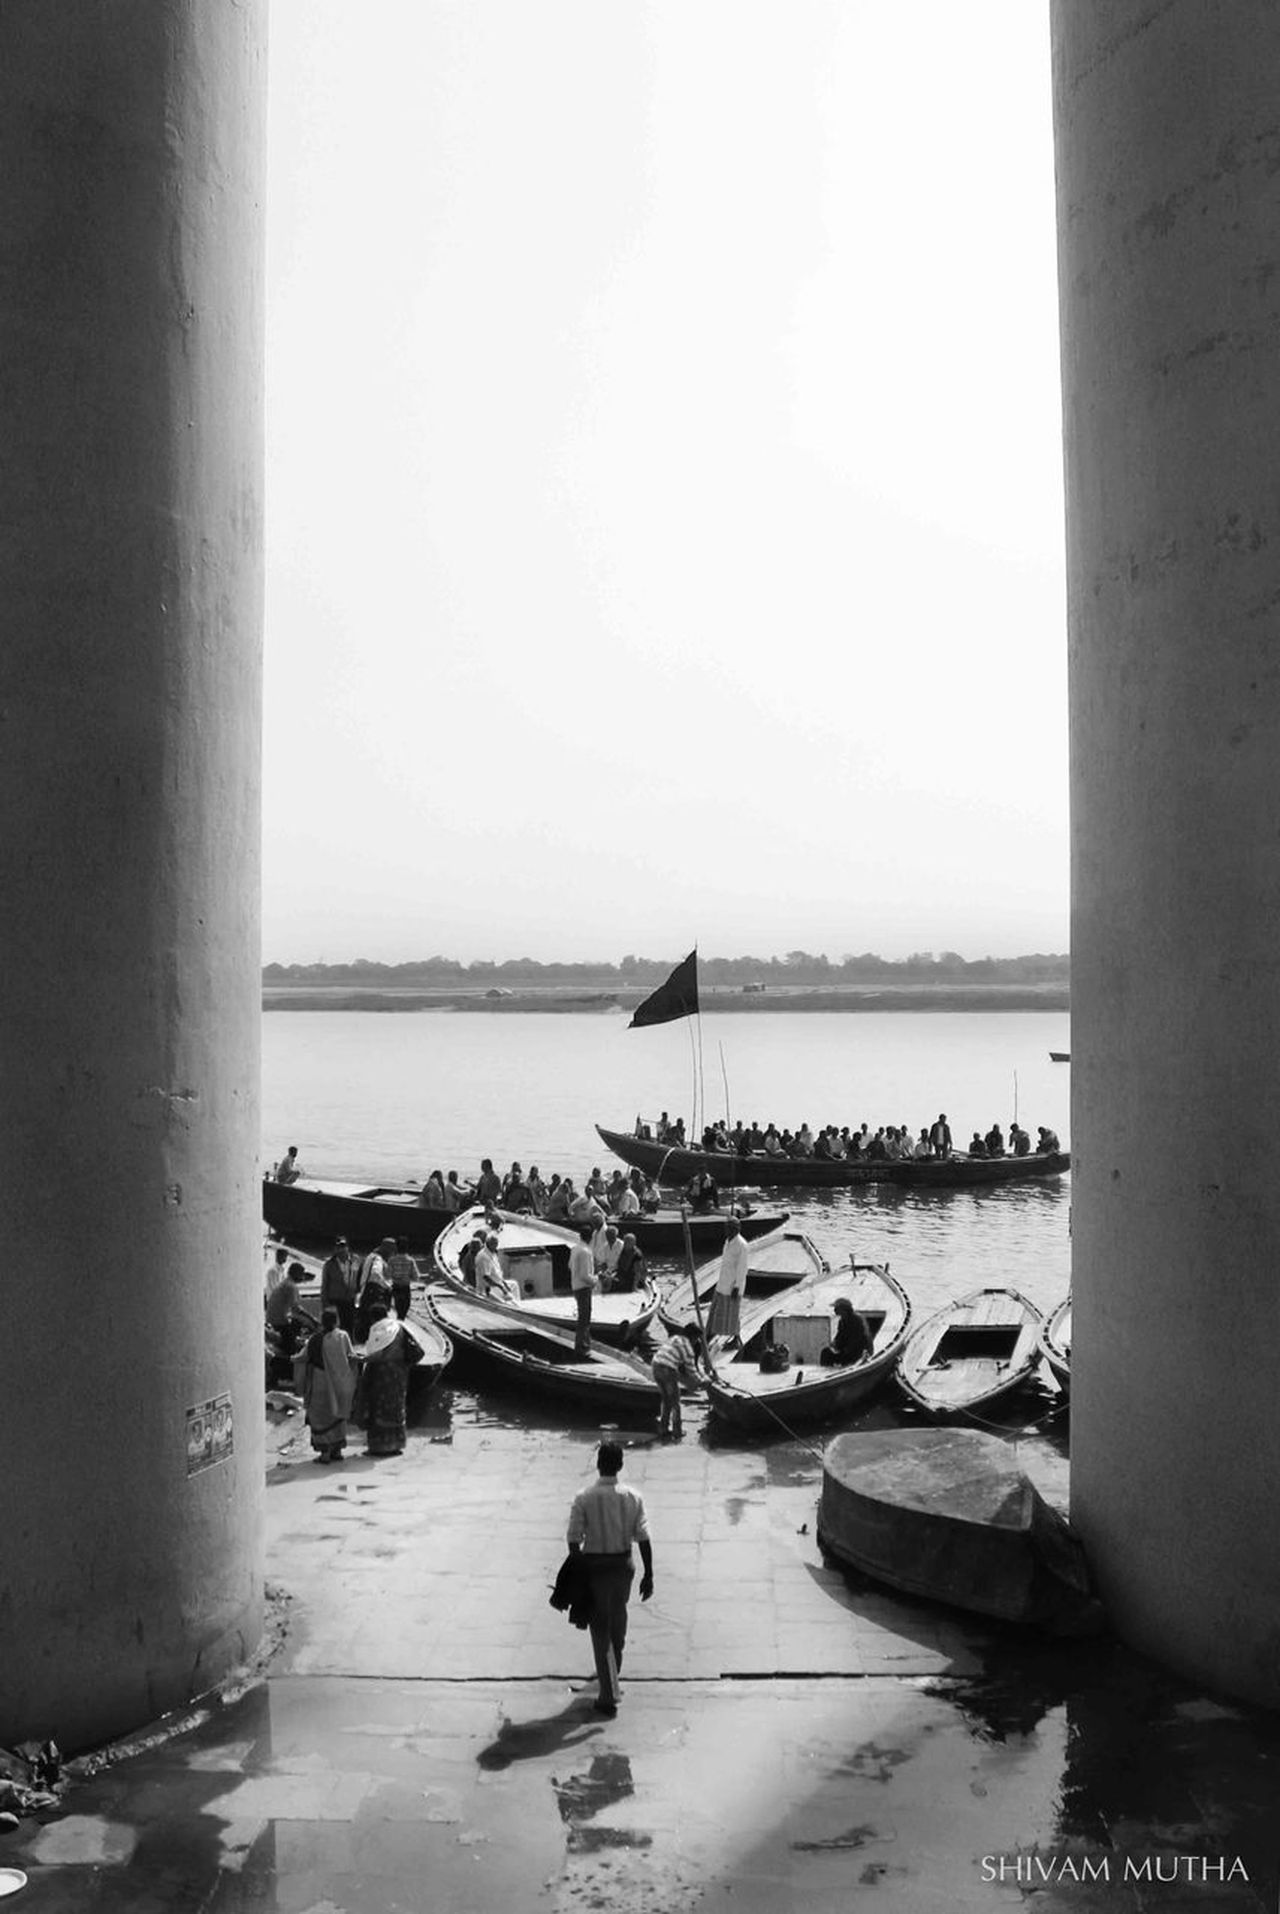 Varanasi, India Ganges, Indian Lifestyle And Culture, Bathing In The Ganges, Architecture Working Day Water Indiapictures People Blackandwhite Photography Black & White City Varanasidiaries Banaras,varanasi,ghat, Streetphotography Composition EyeEmNewHere